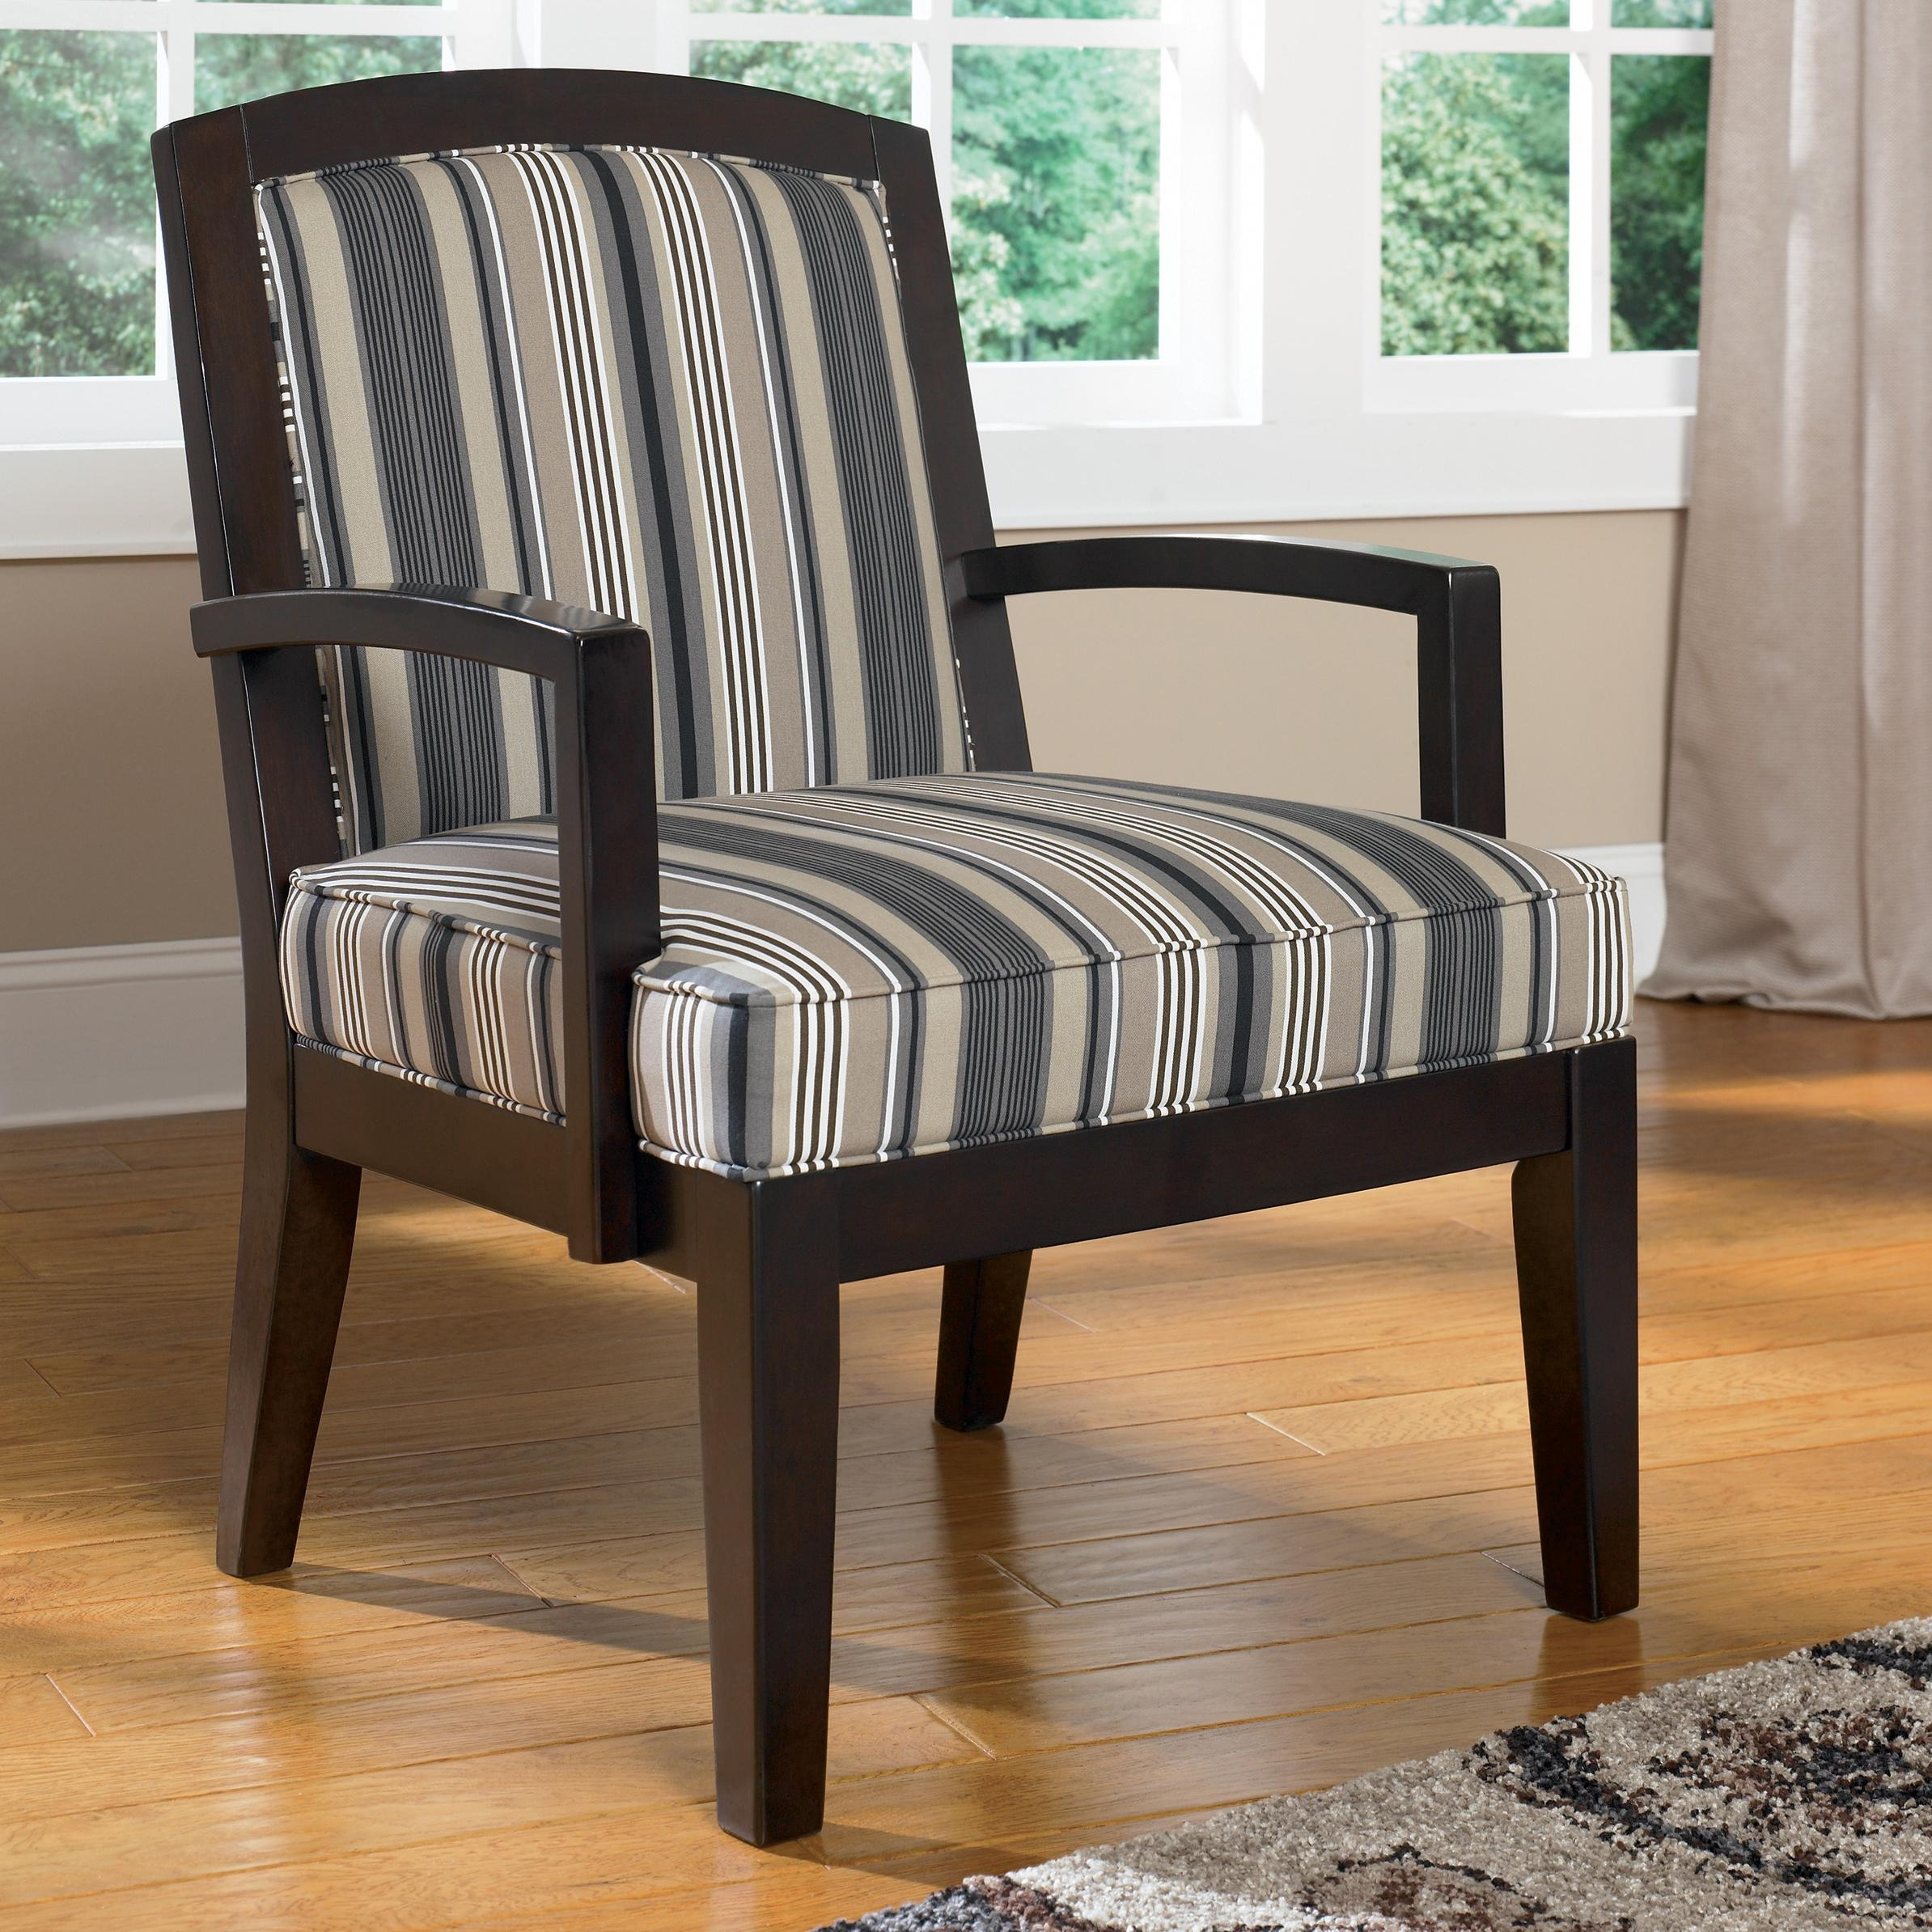 Ashley Furniture Yvette Steel Showood Accent Chair W Wood Frame Throughout Accent Sofa Chairs (View 7 of 15)